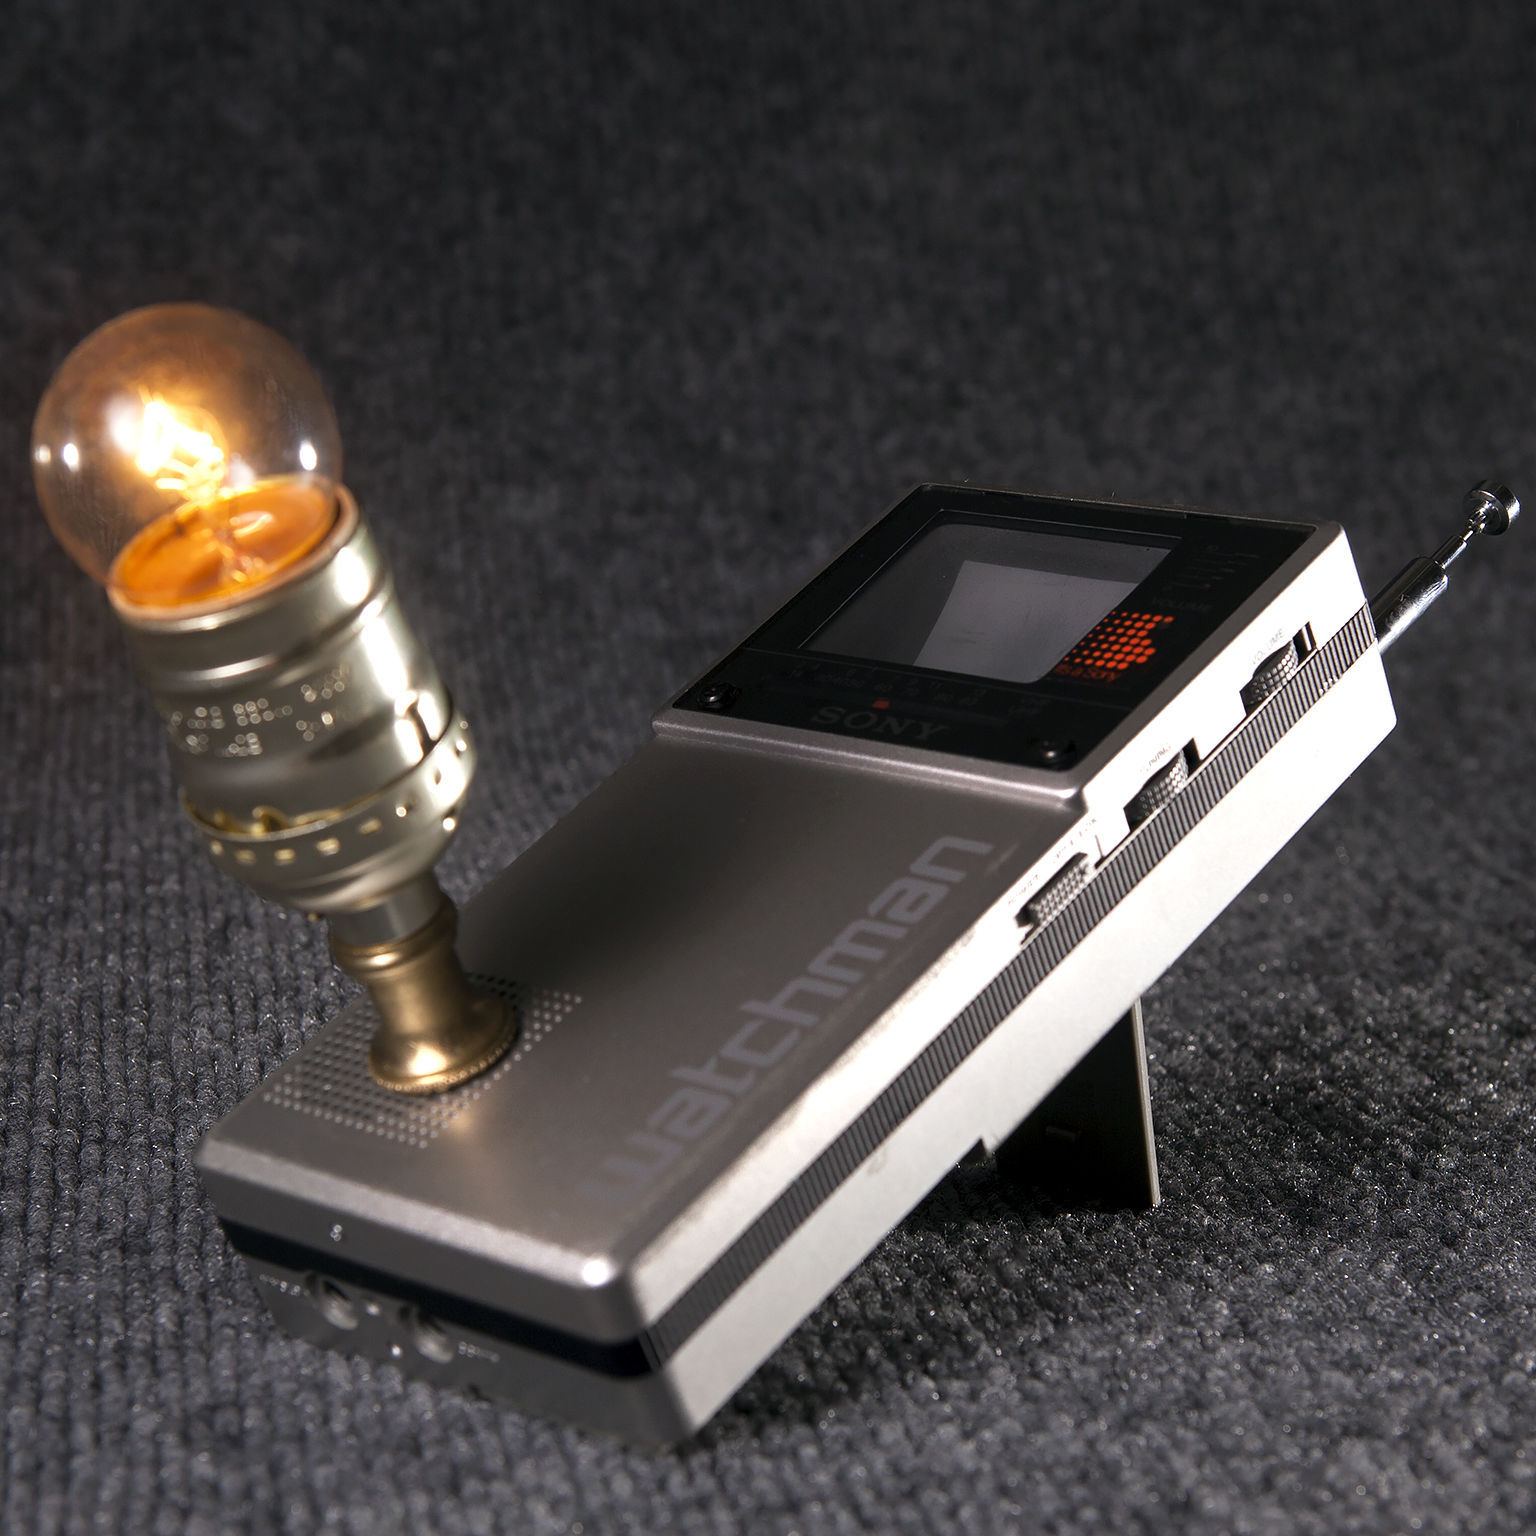 Vintage Sony Watchman Portable Television Mini Lamp - Unique Light - Free Ship